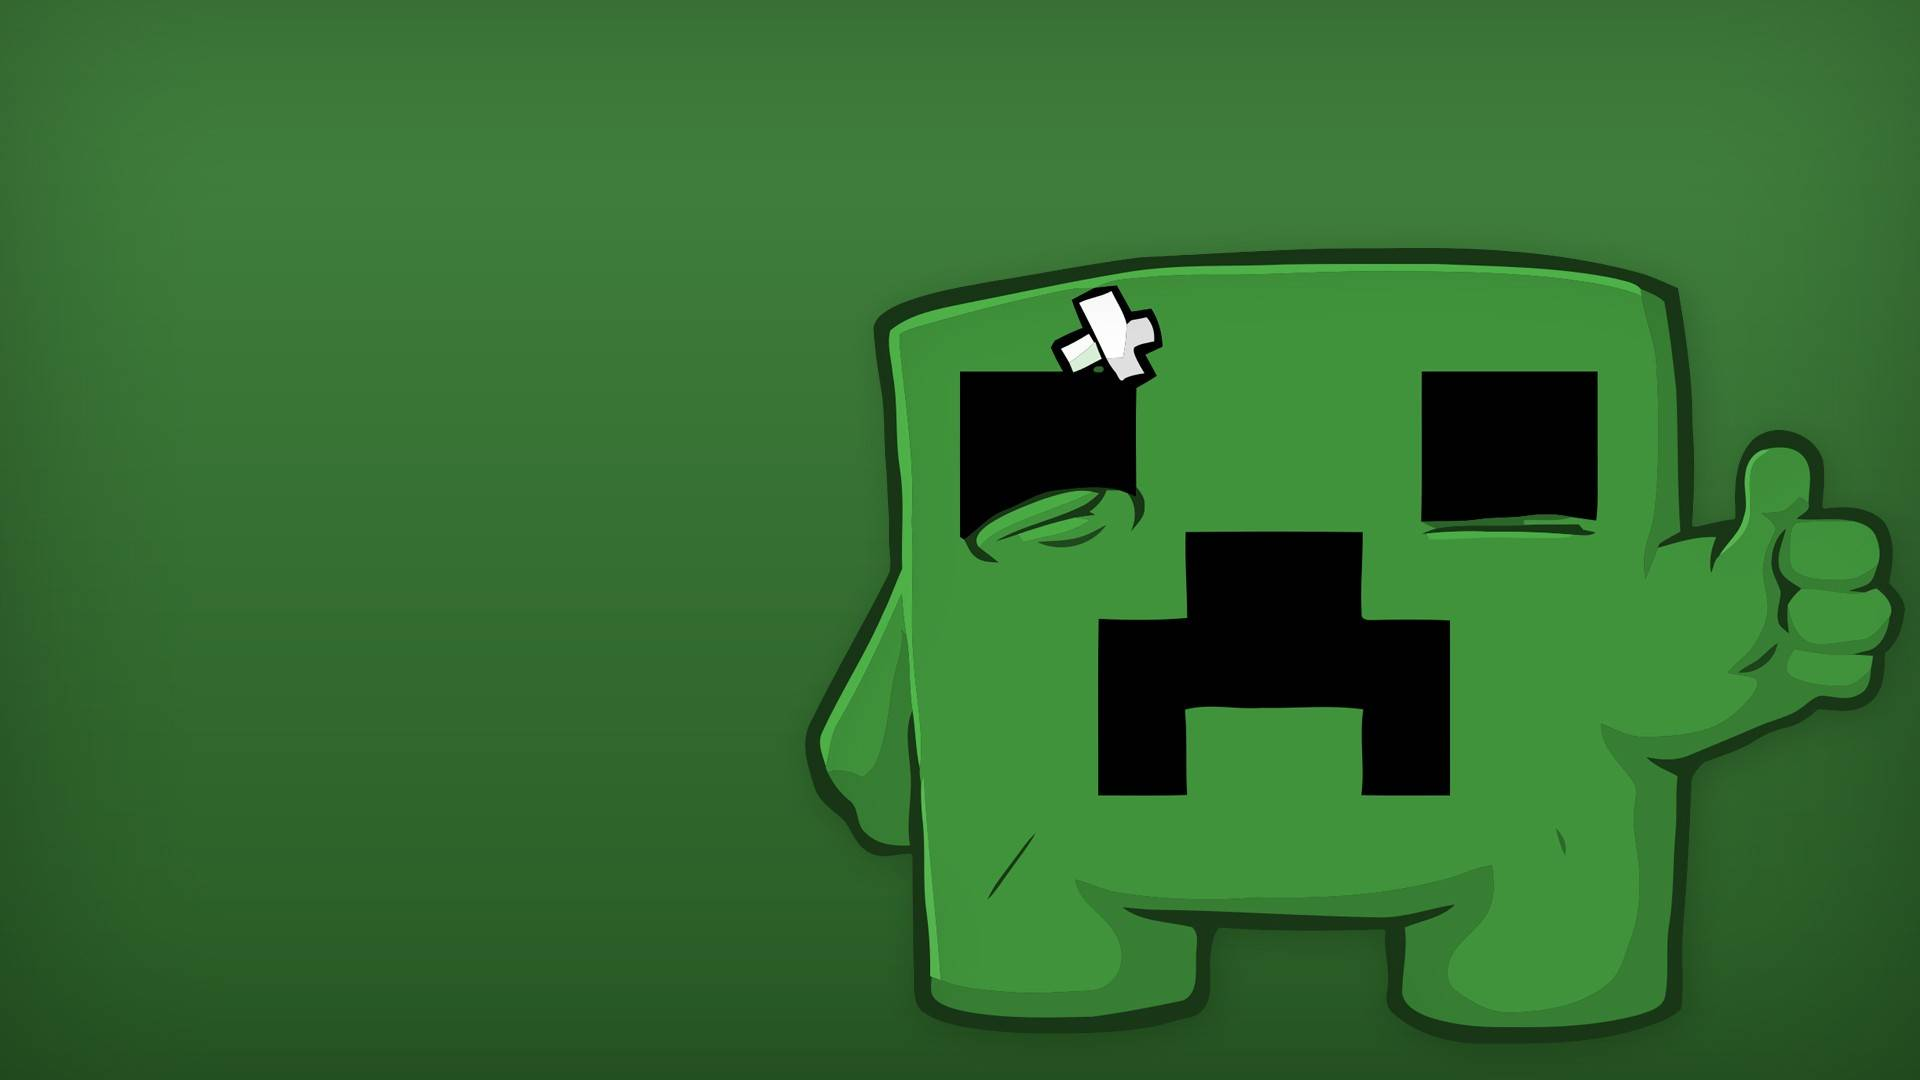 minecraft desktop wallpaper minecraft desktop wallpaper 1920x1080